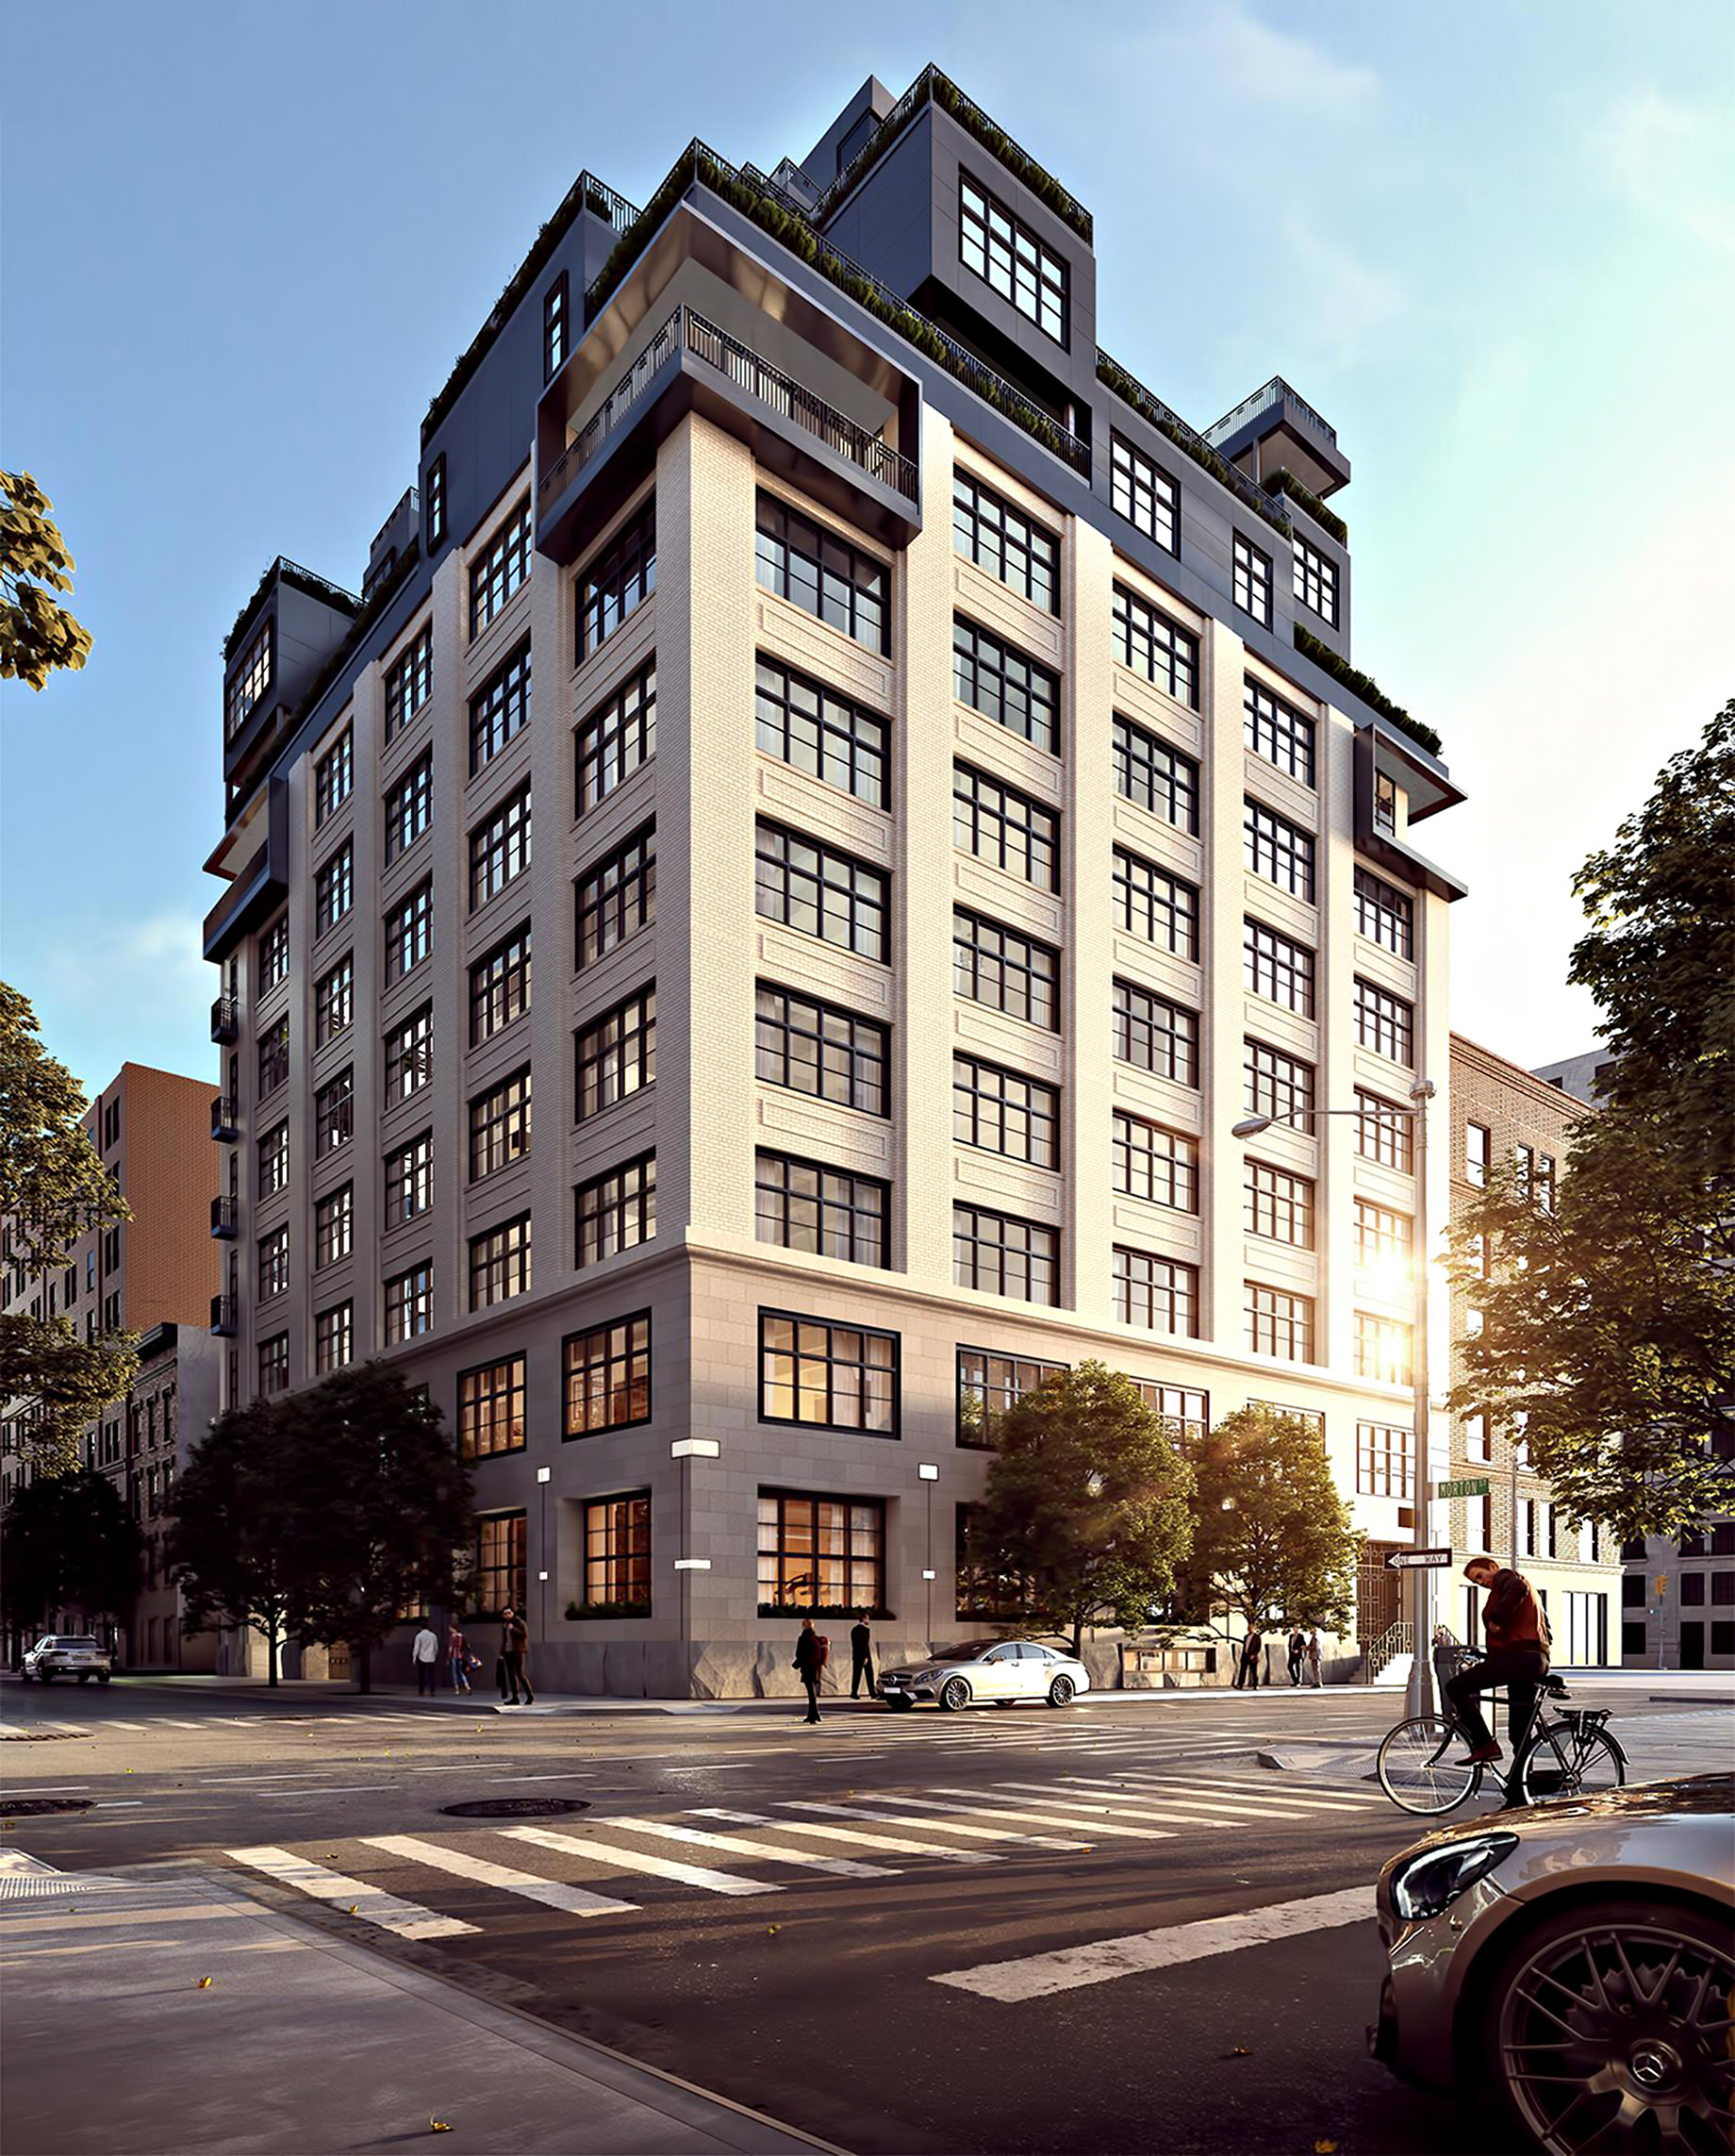 Luxury Lofts – New York City Luxury Real Estate – Why Living in the West Village is a Must